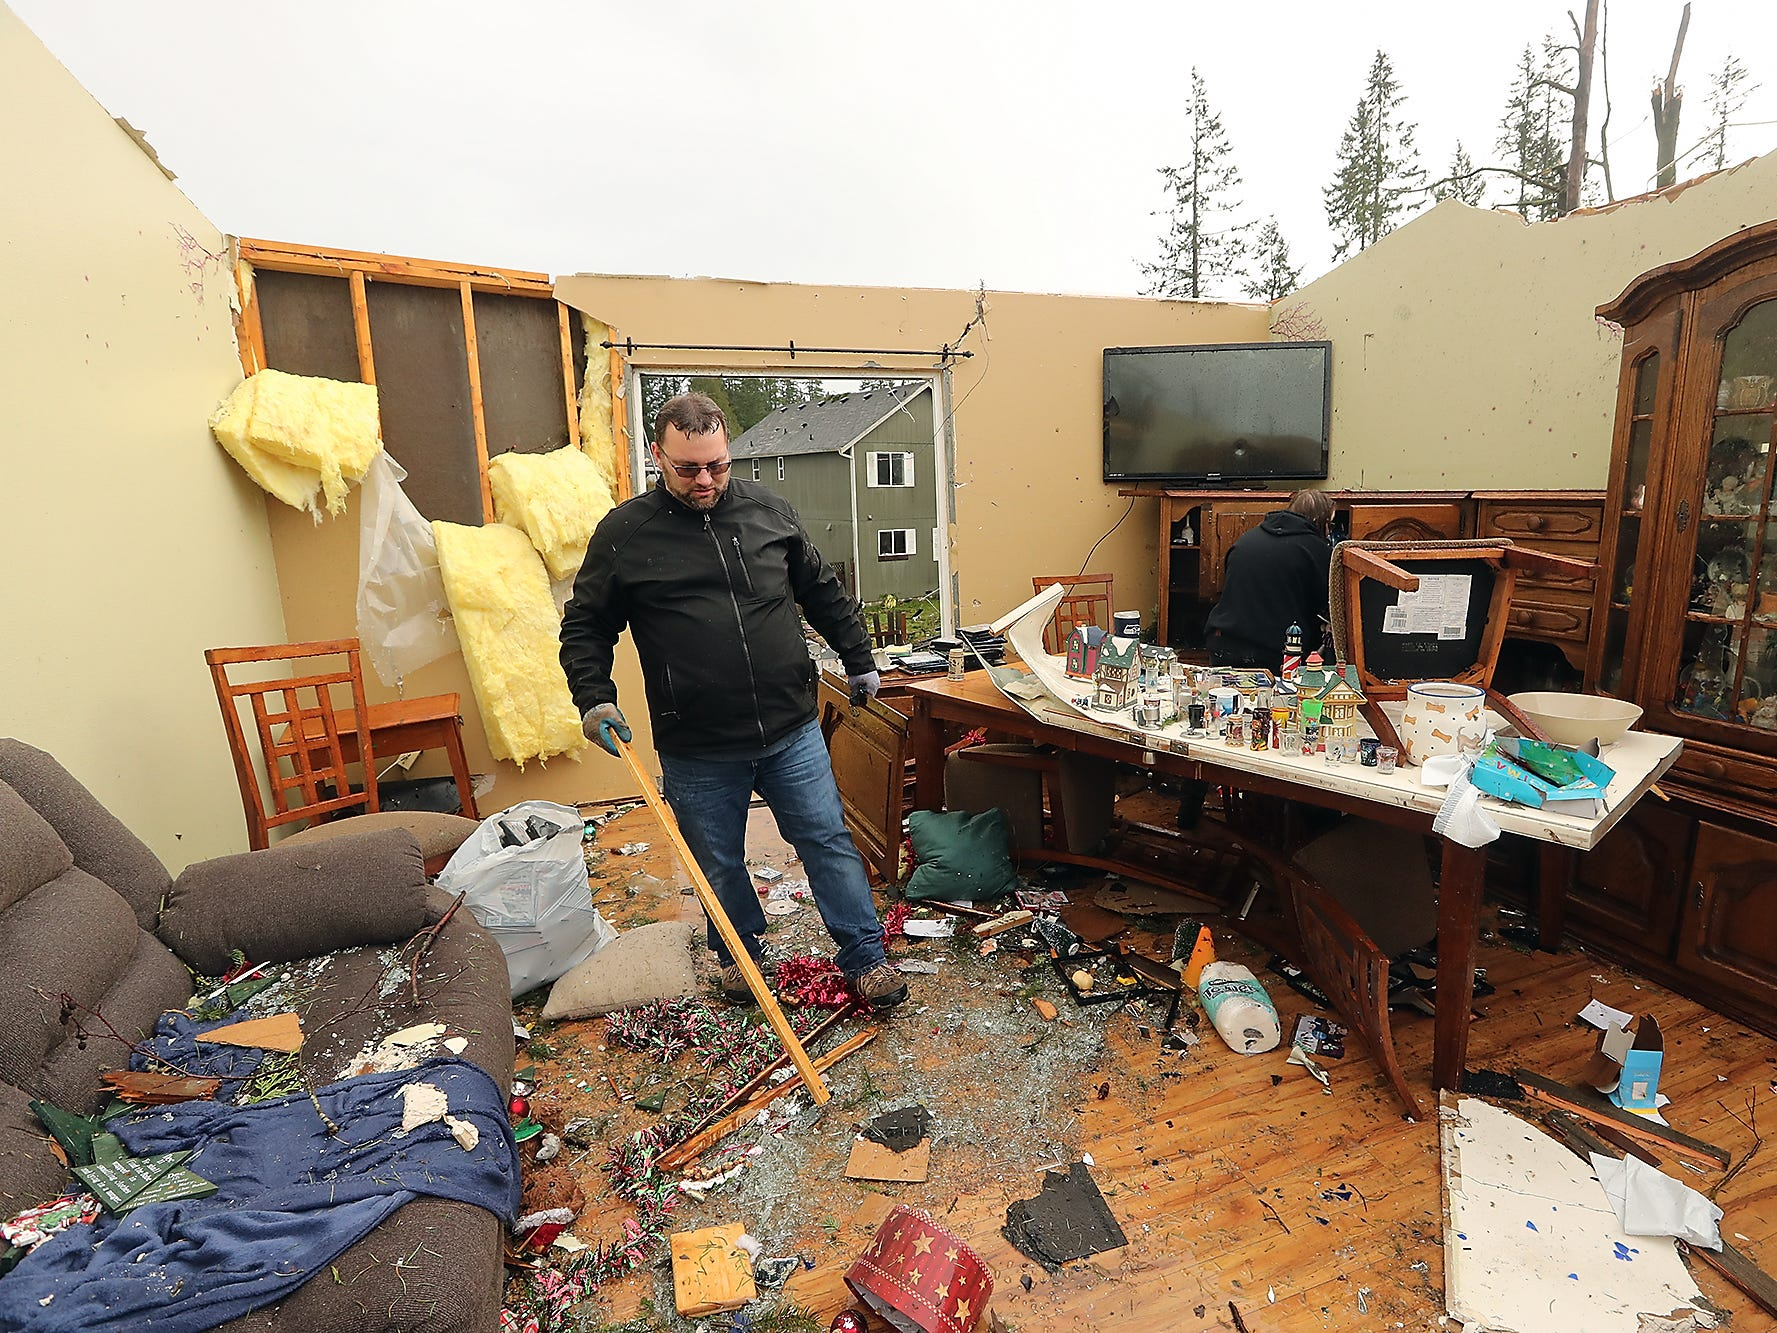 John Mueller moves through the living room of his now roofless house as he and his family try to salvage what they can from their home on Tiburon Court in Port Orchard, Washington on Wednesday, December 19, 2018. A tornado touched down in the area on Tuesday.